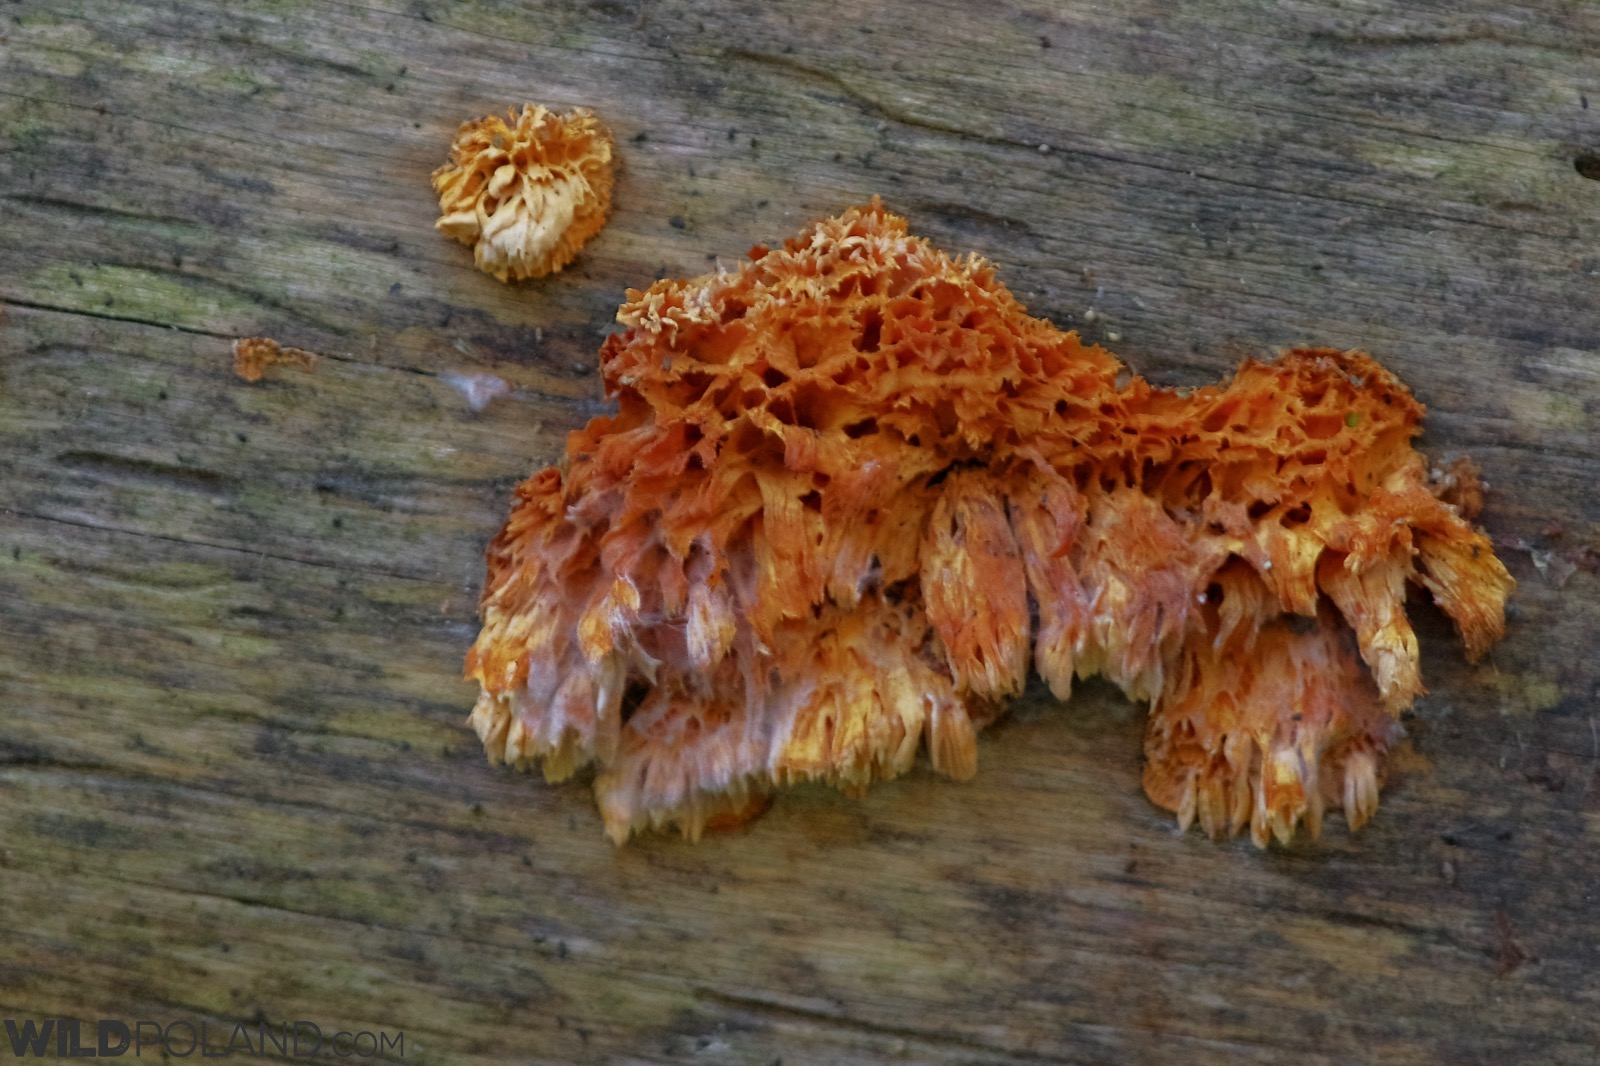 Orange sponge polypore in the Strictly Protected Area of the Białowieża NP, photo by Andrzej Petryna